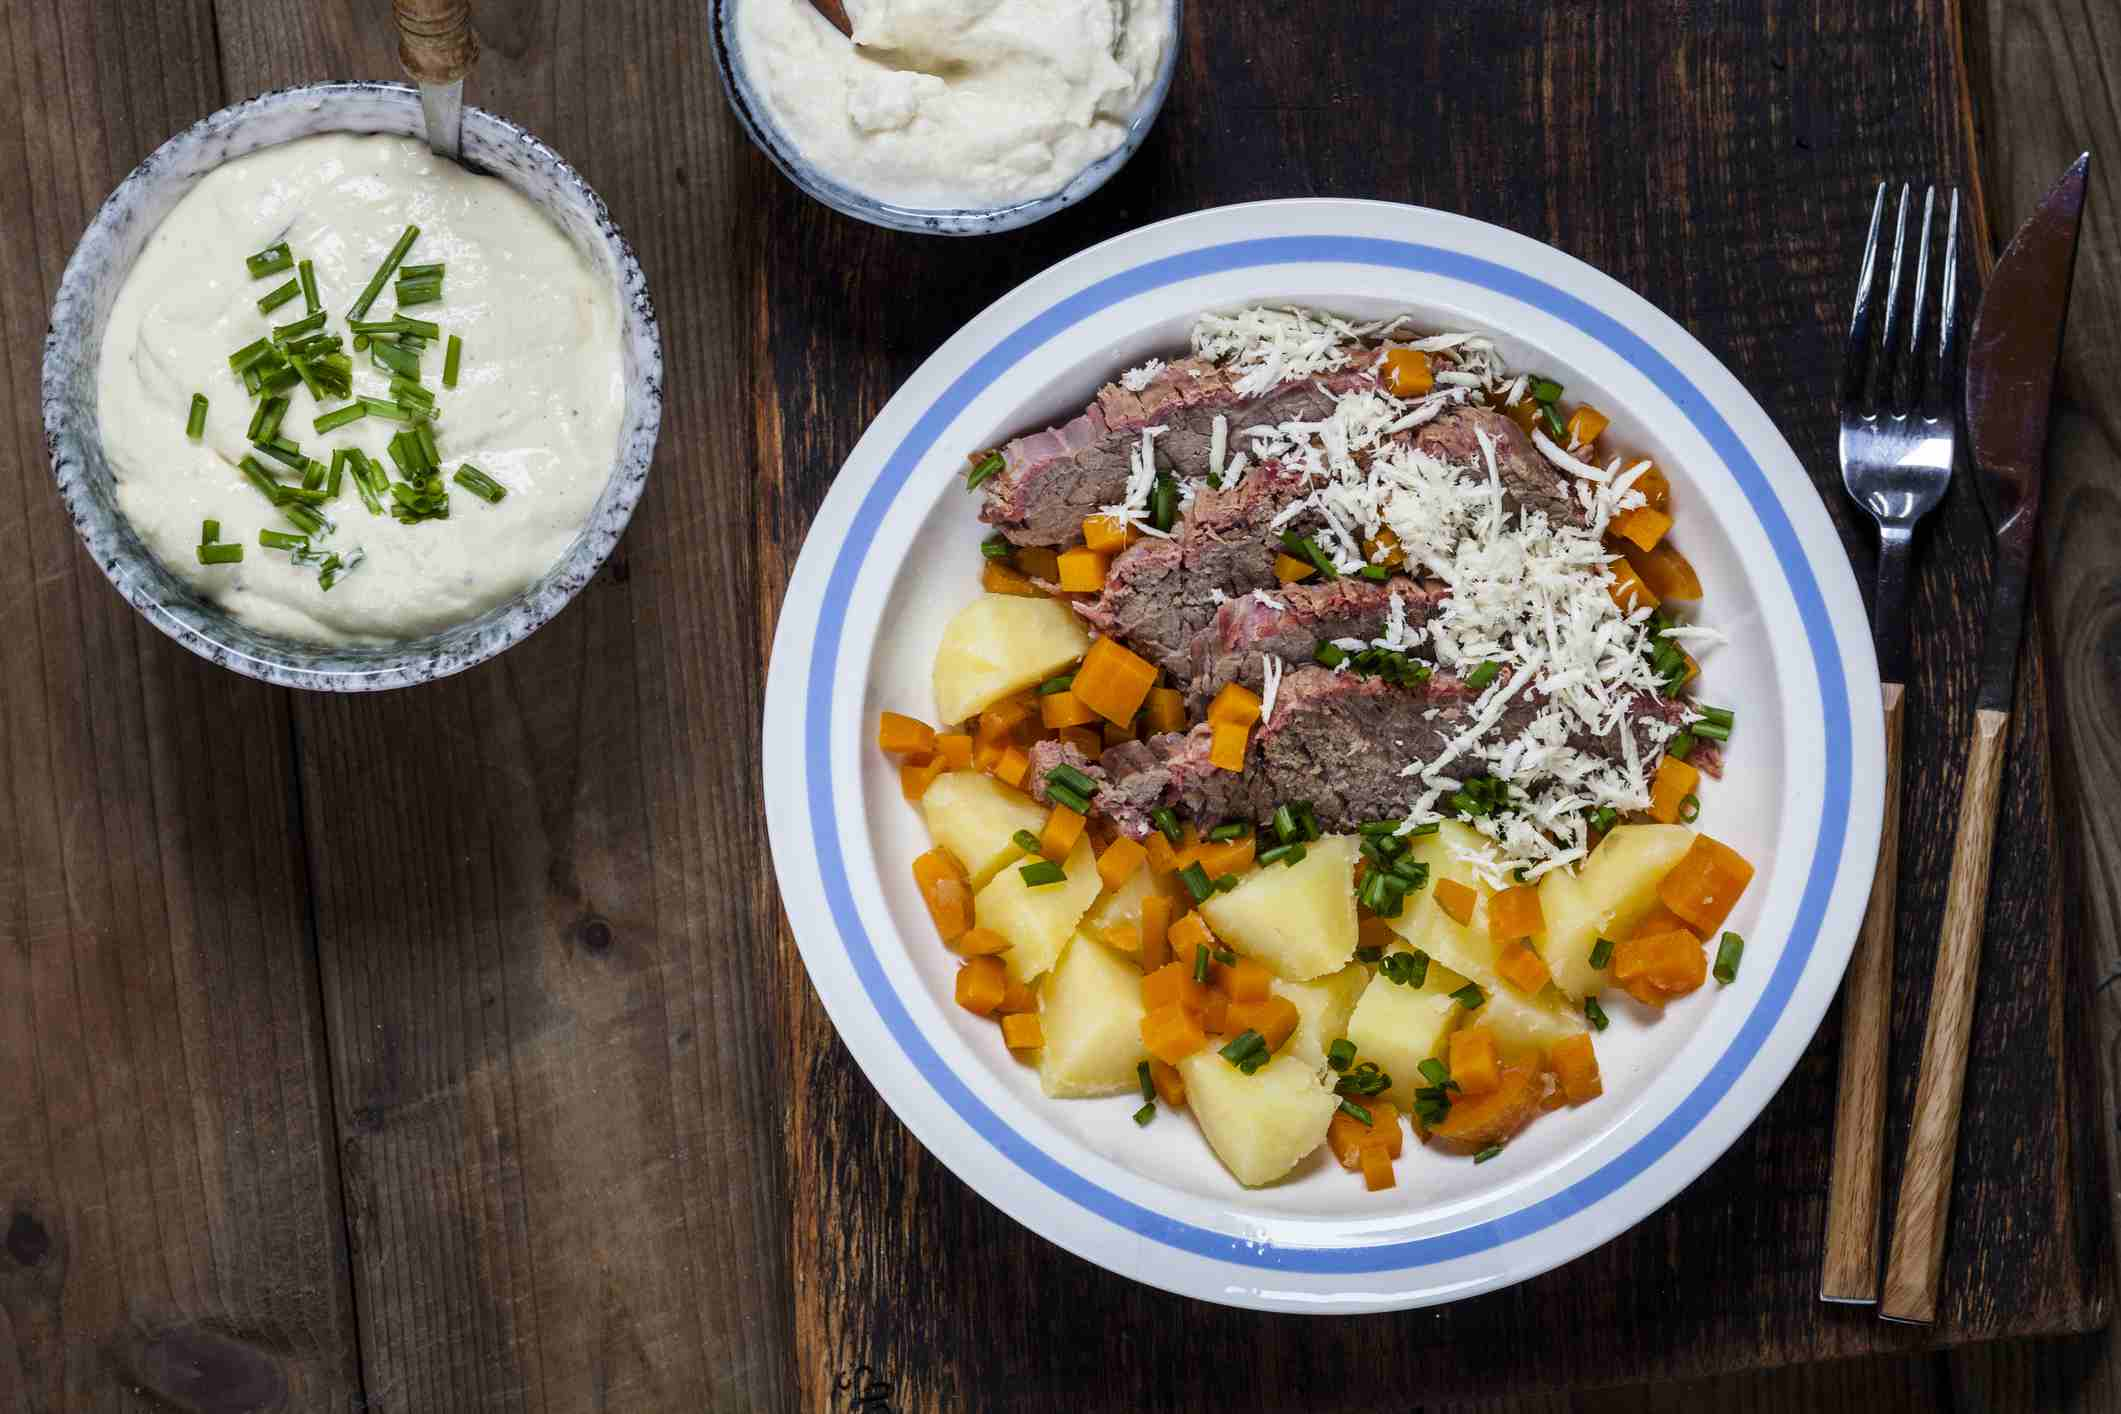 Tafelspitz with boiled potatoes, carrots, creamed horseradish and chives sauce